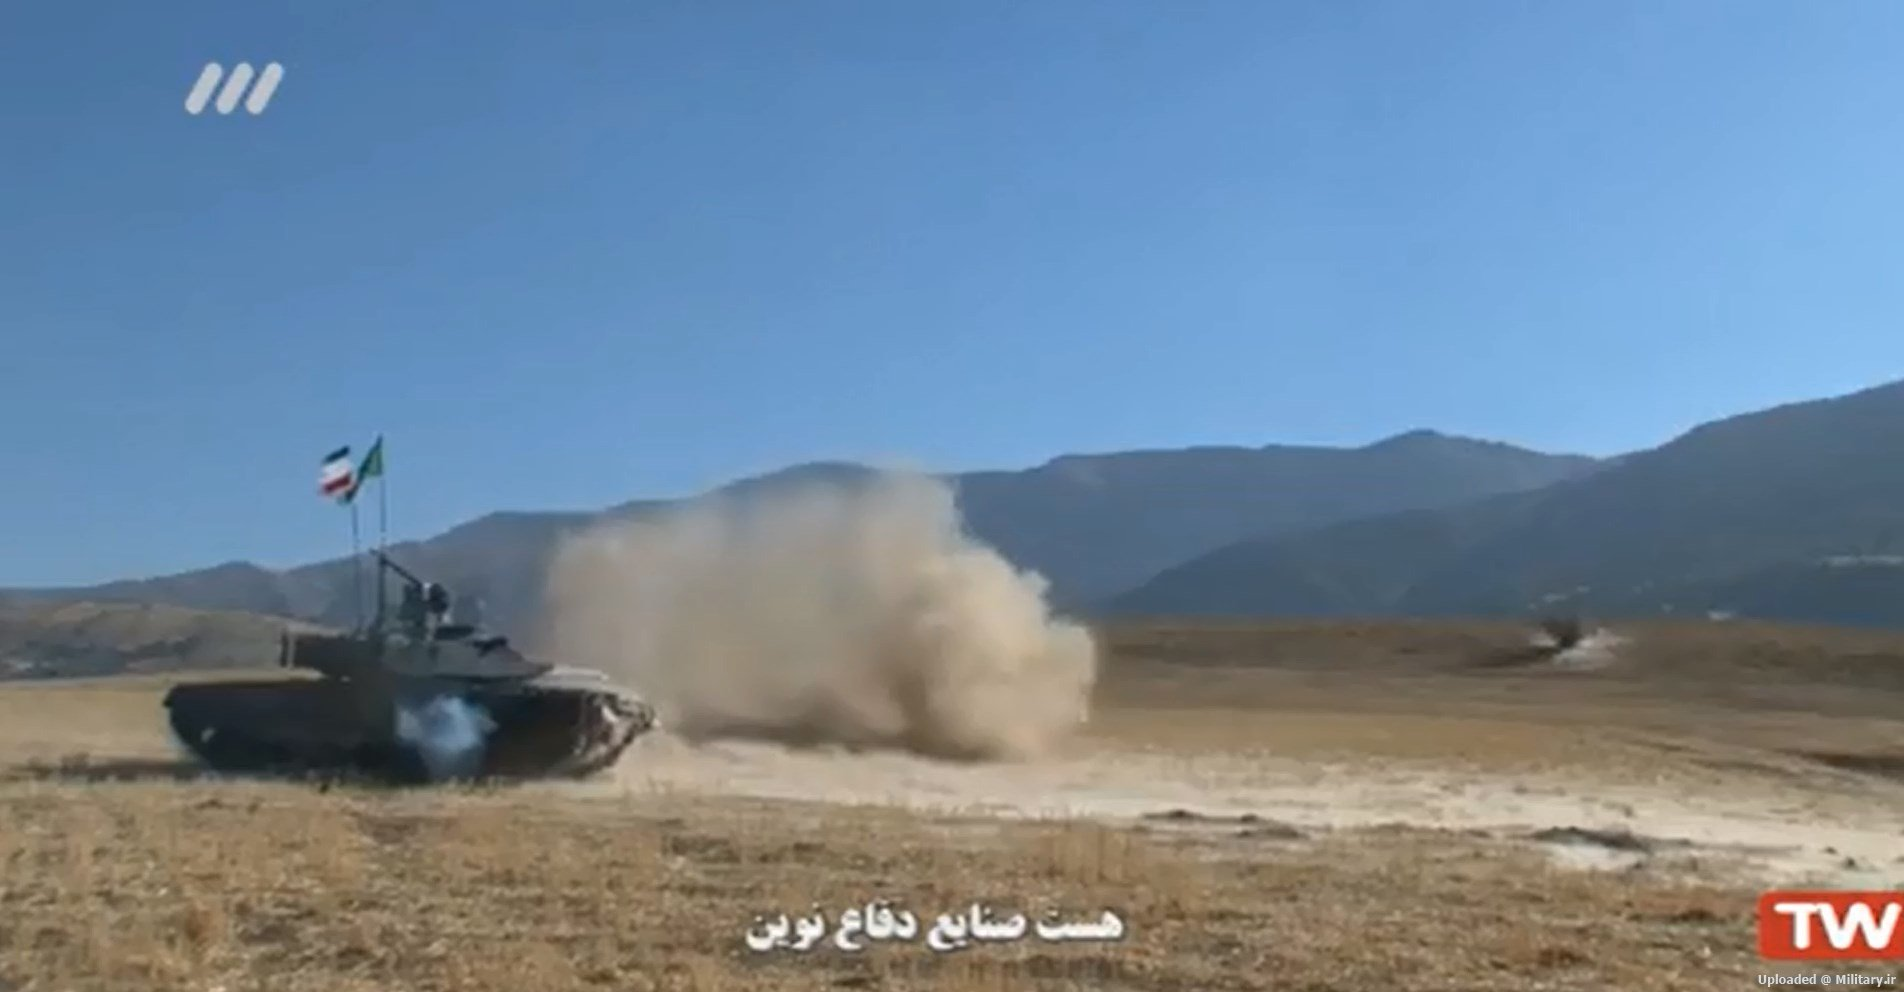 Iranian Ground Forces | News and Equipment - Page 3 Bandicam_2016-08-25_11-53-03-787_mp4_snapshot_01_00_5B2016_08_25_12_05_335D